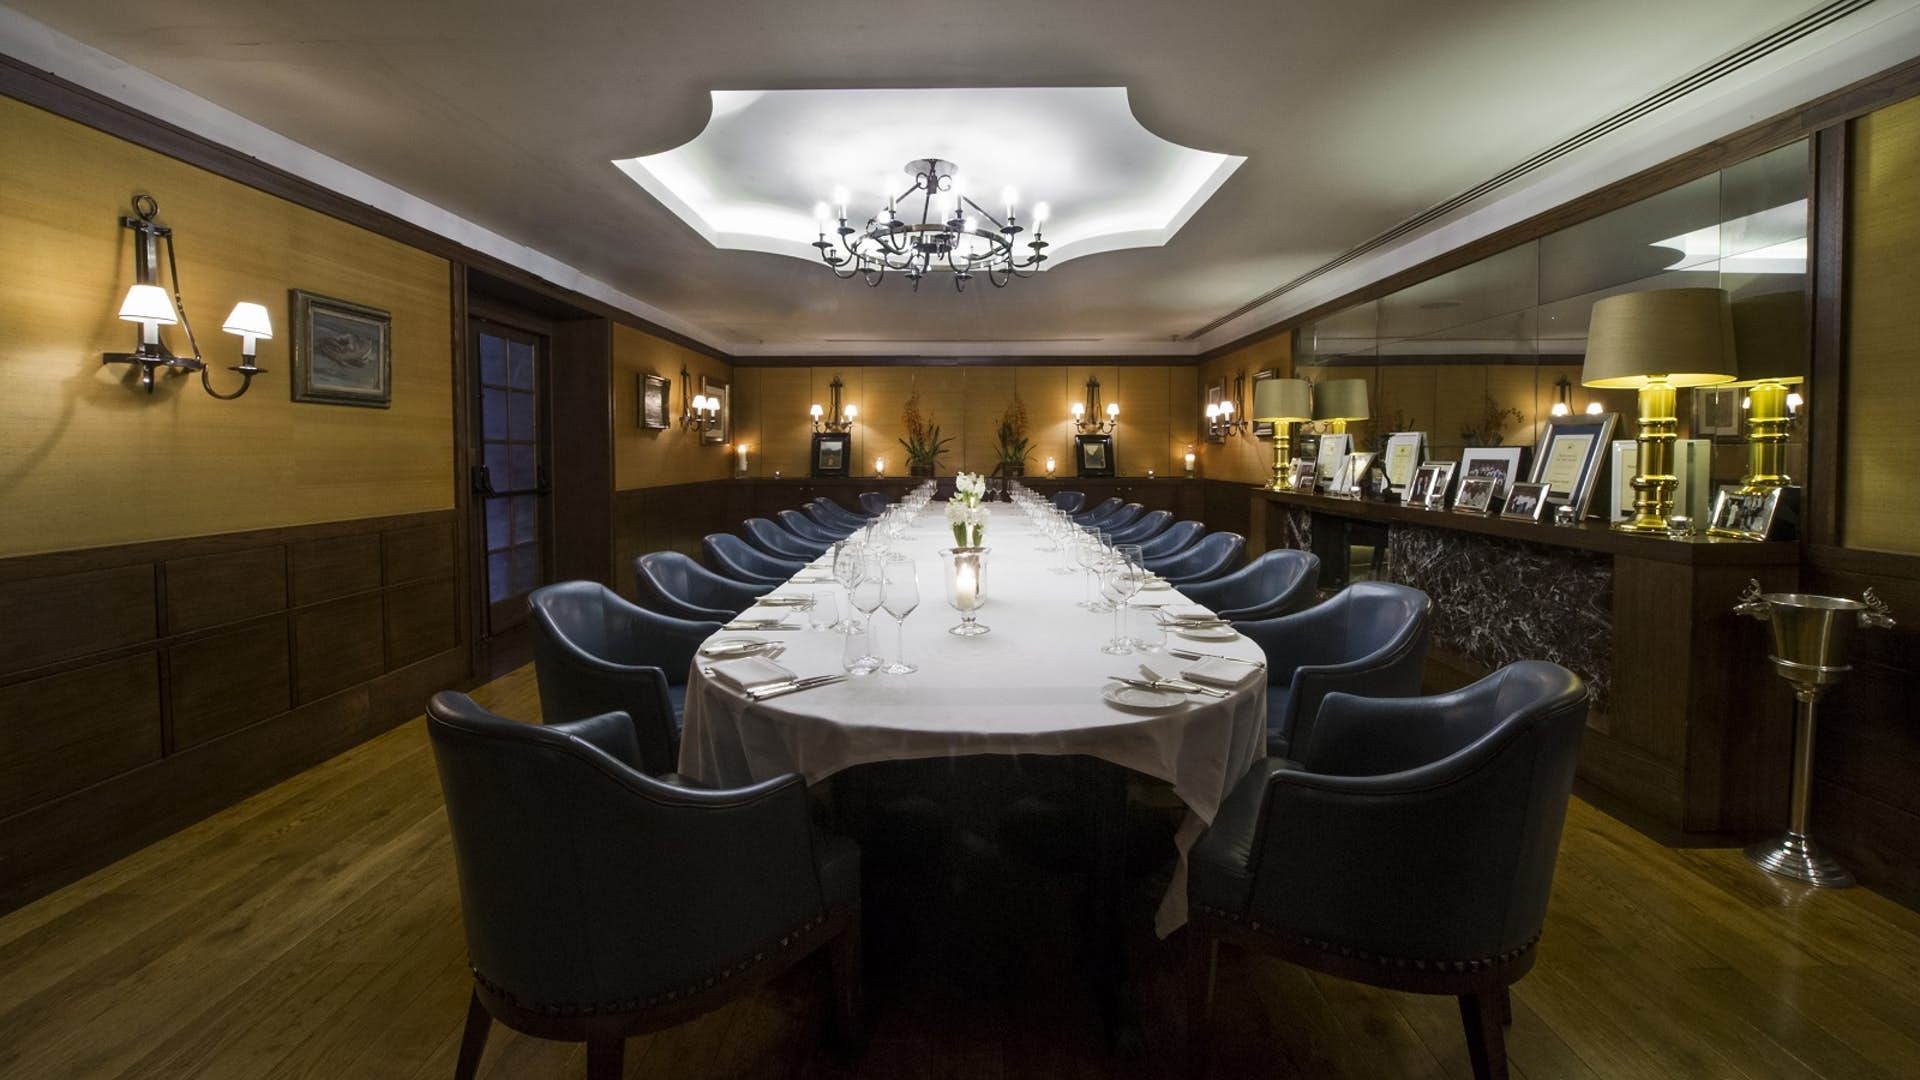 The lindsay room dining hire corrigan 39 s mayfair for Q dining room london